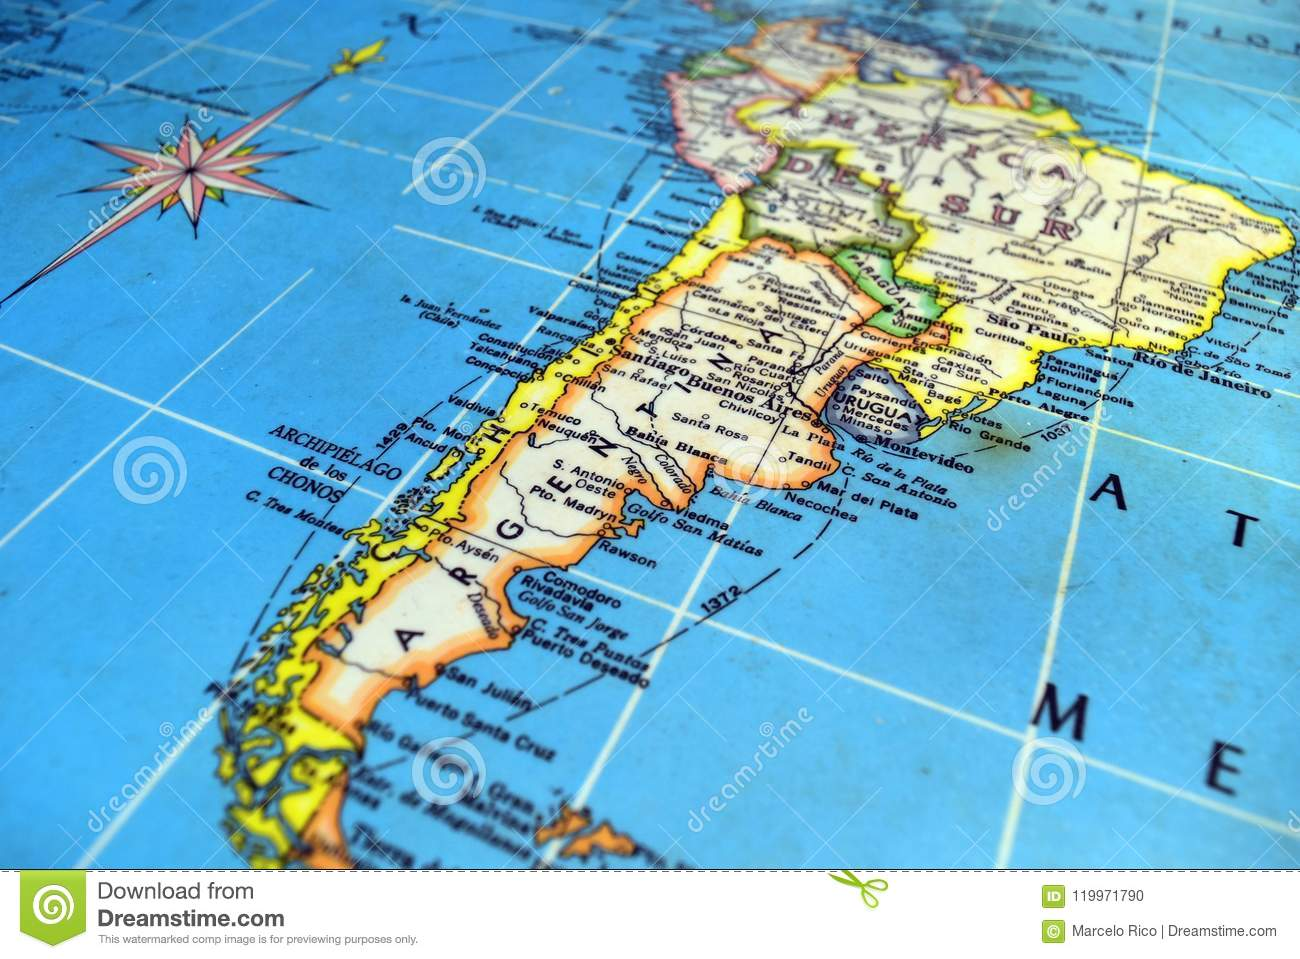 Argentina Map stock photo. Image of niemeyer, angle - 119971790